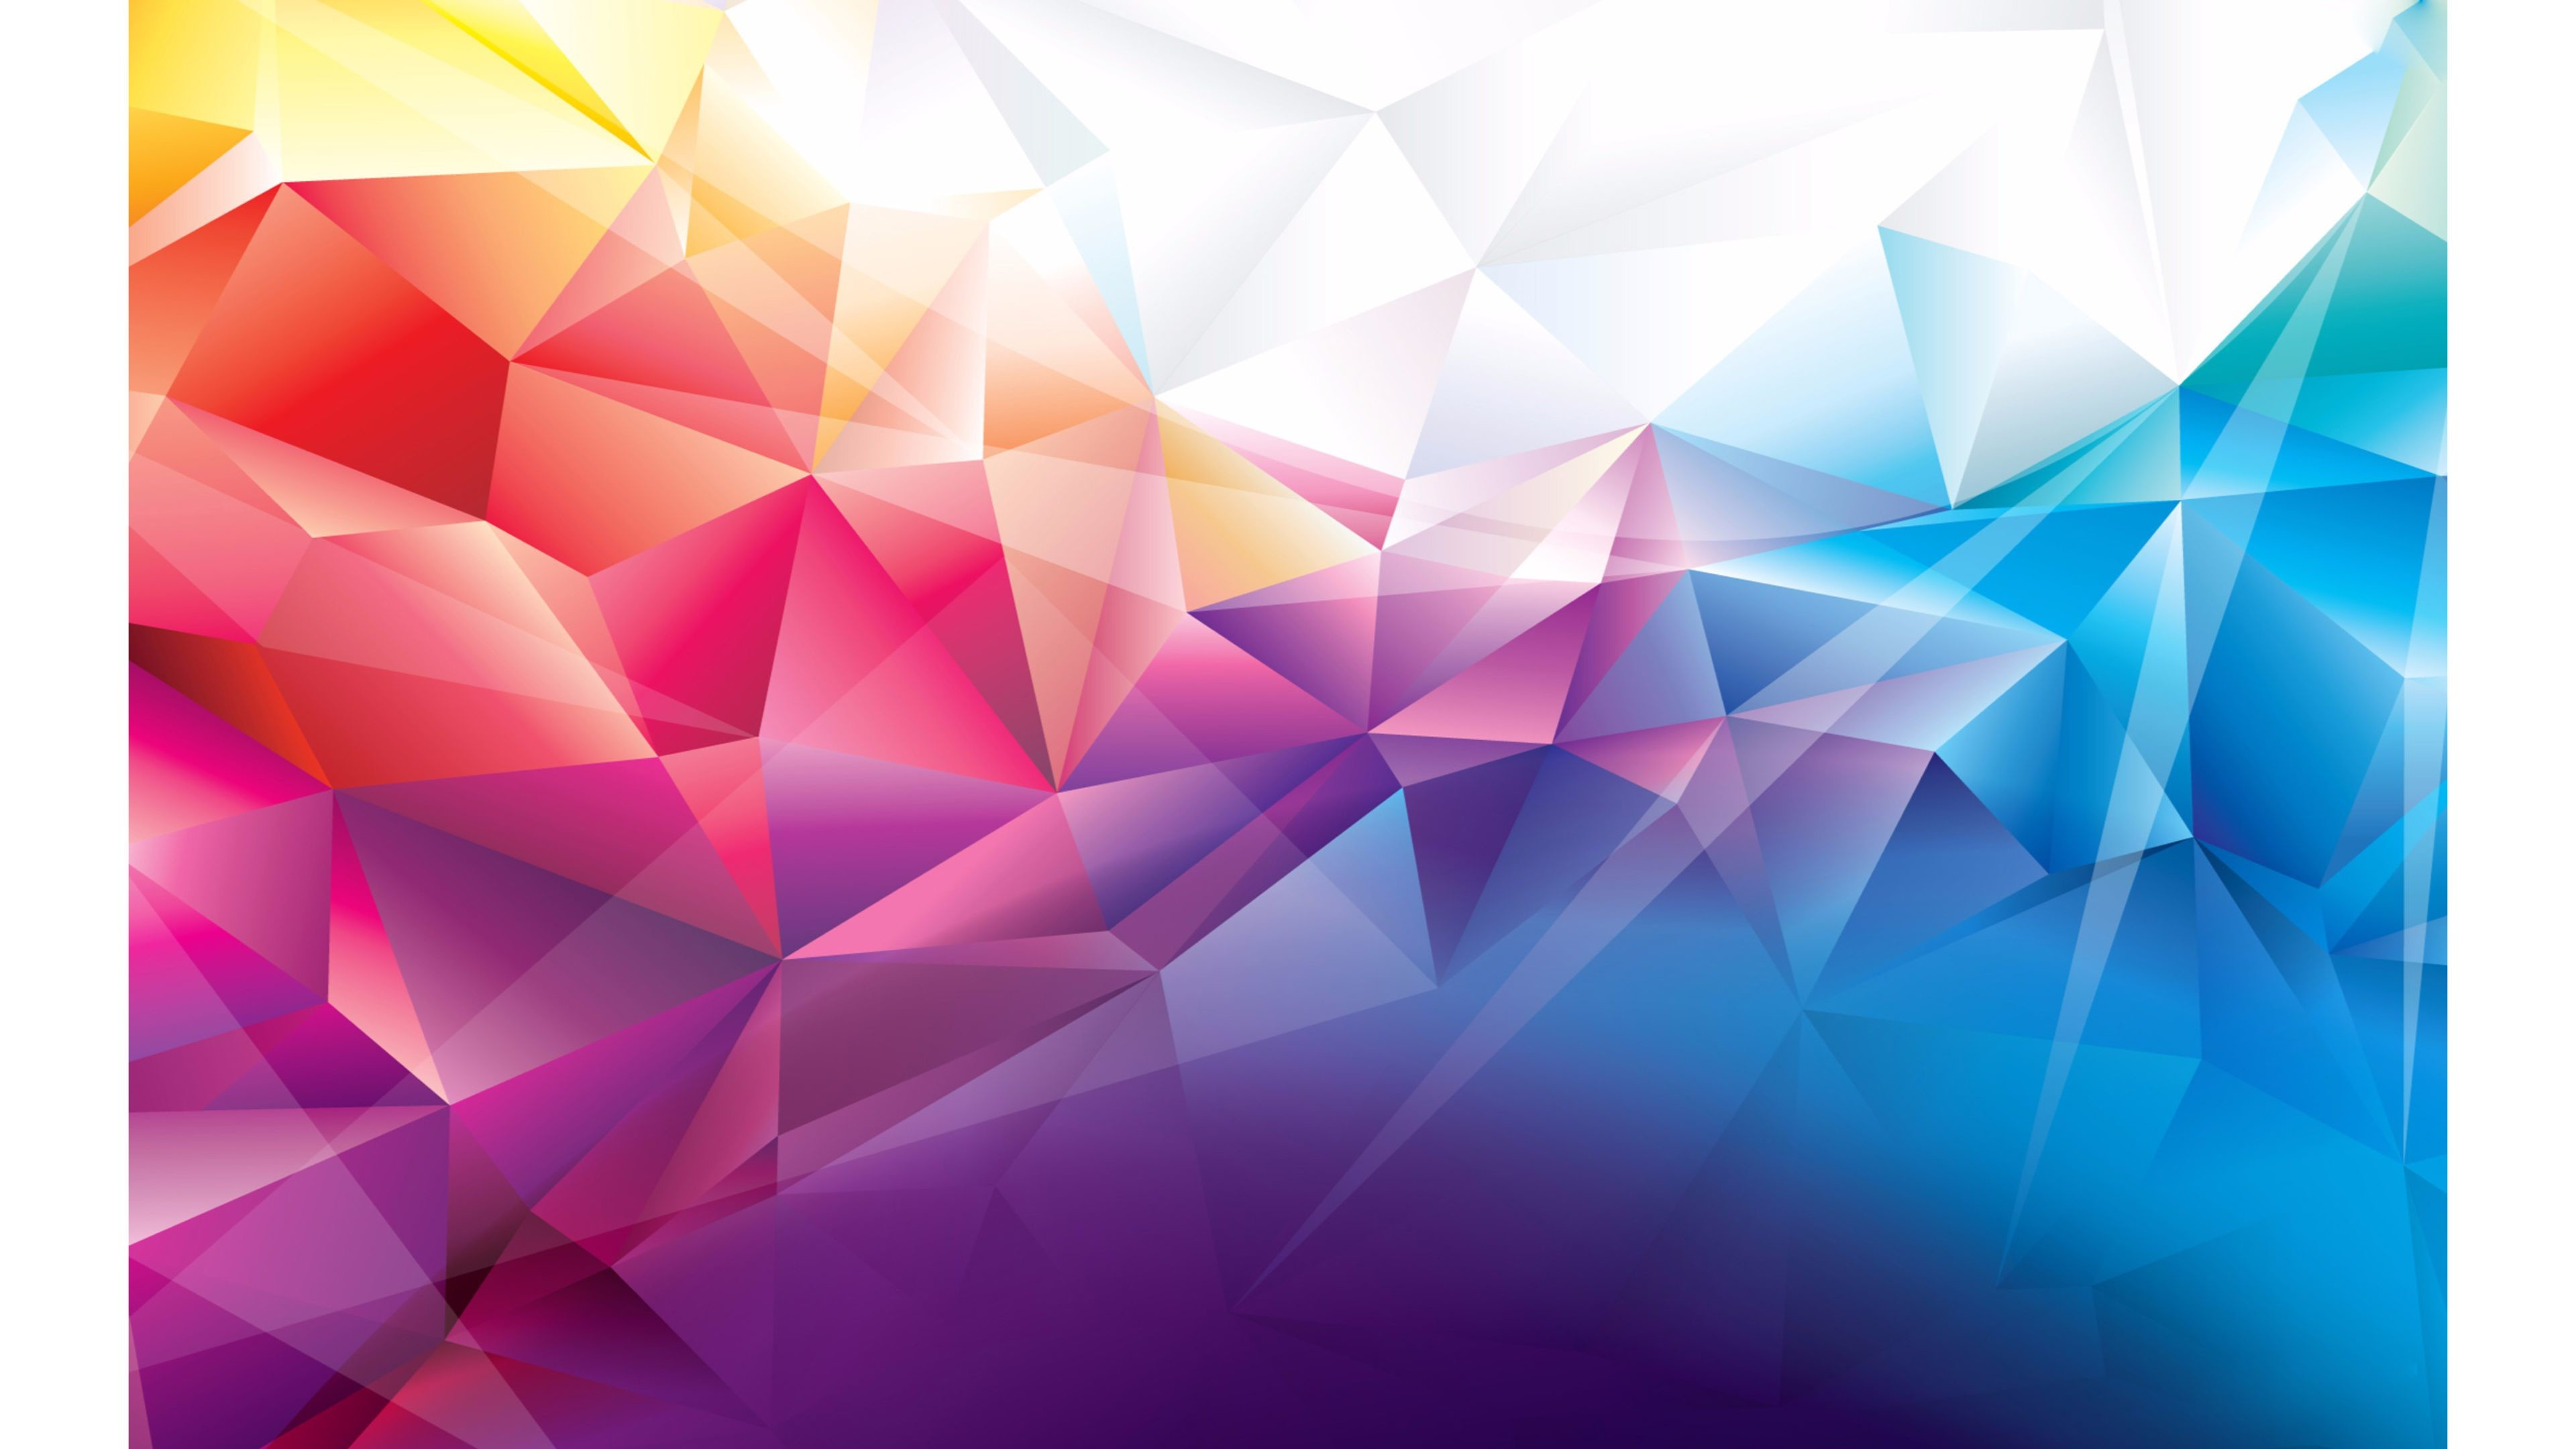 Abstract Wallpaper 4k Colors 4K | Free Widescreen Hd 1080p abstract